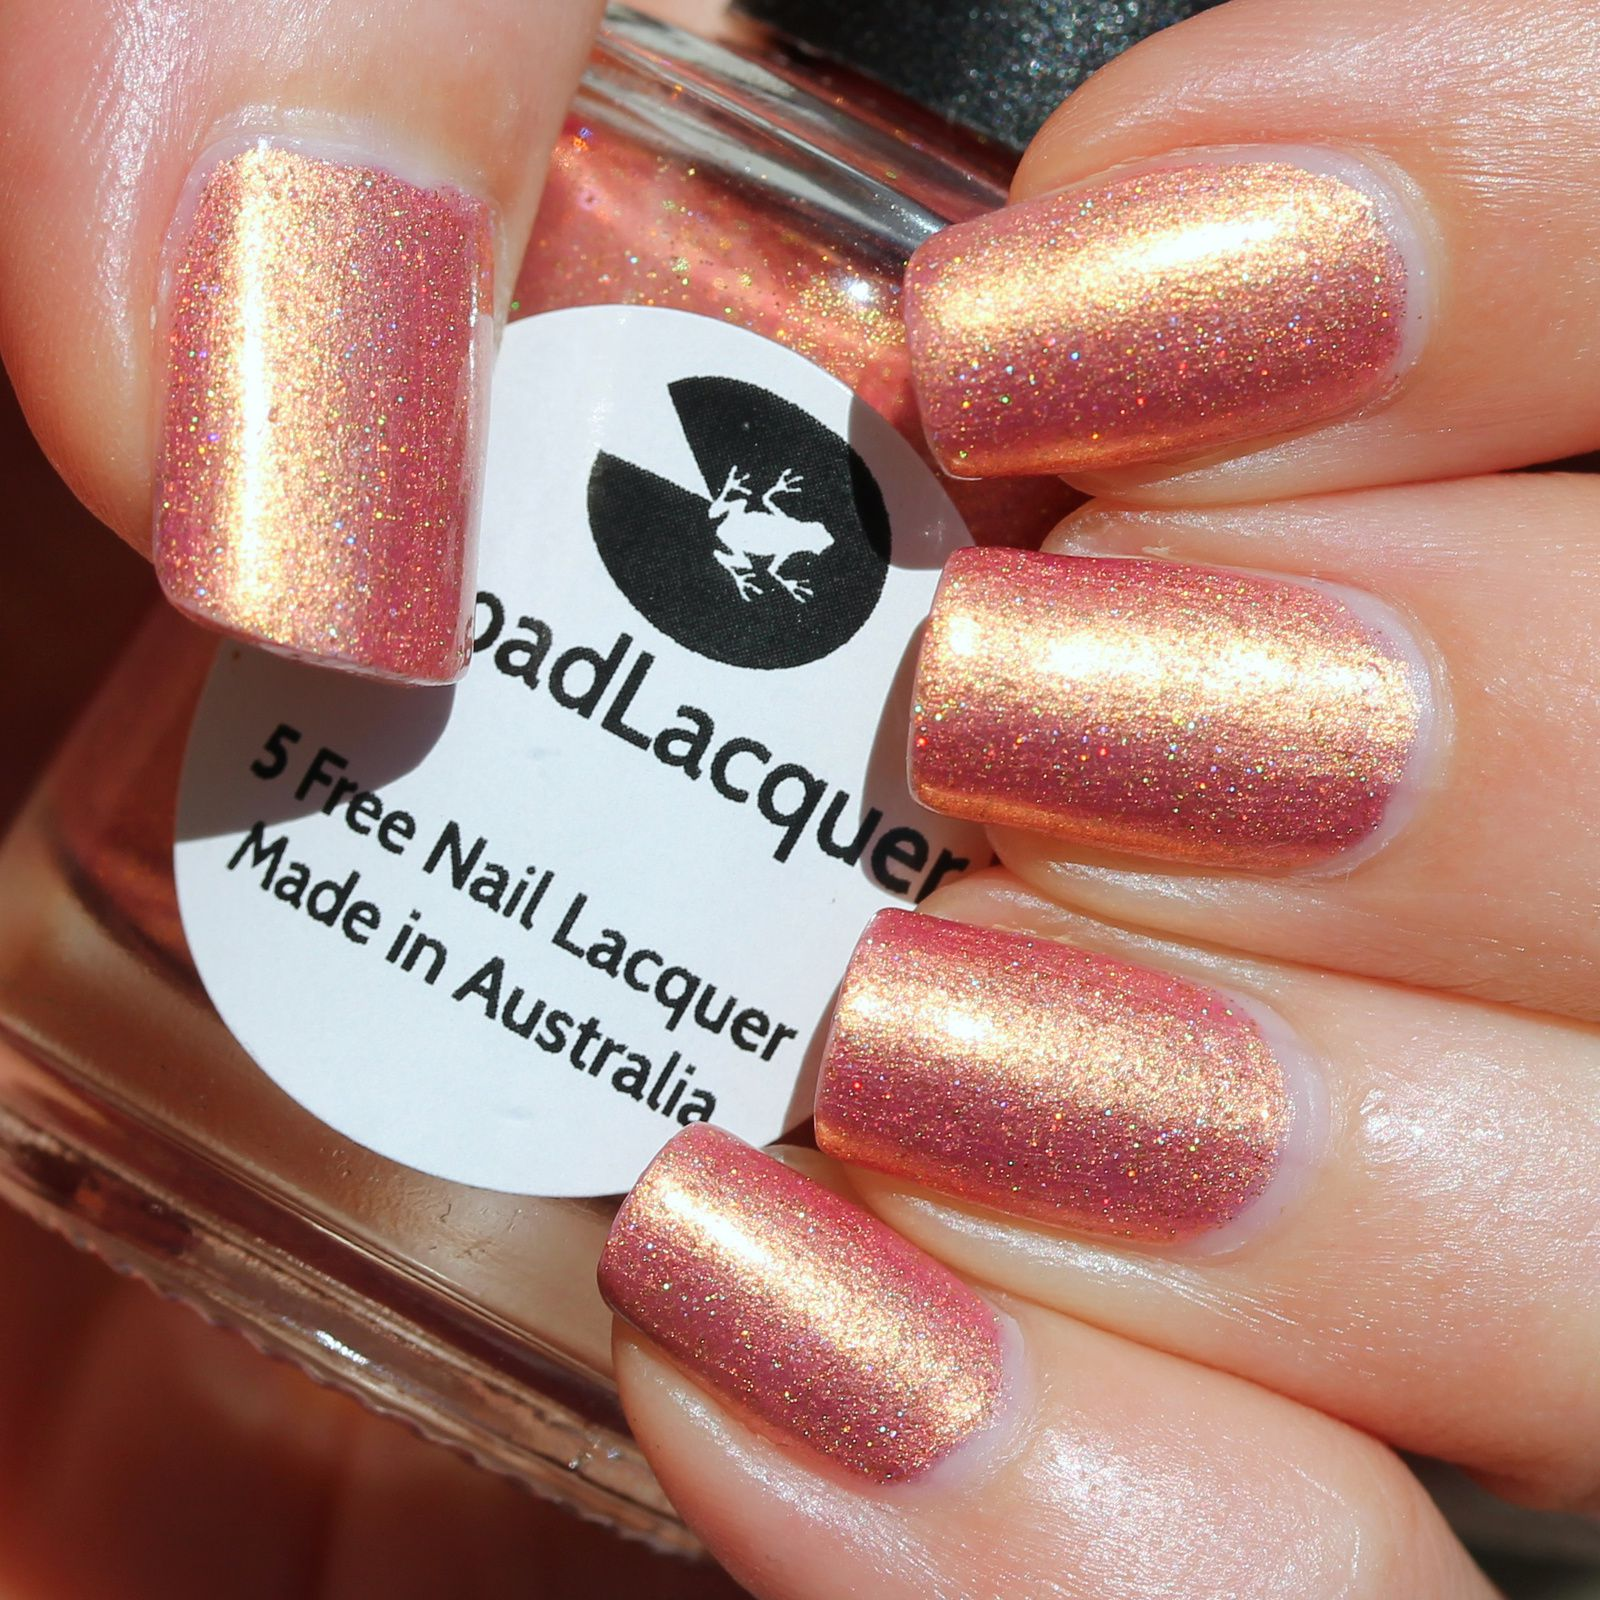 Duri Rejuvacote / Lilypad Lacquer Rose Gold / HK Girl Top Coat